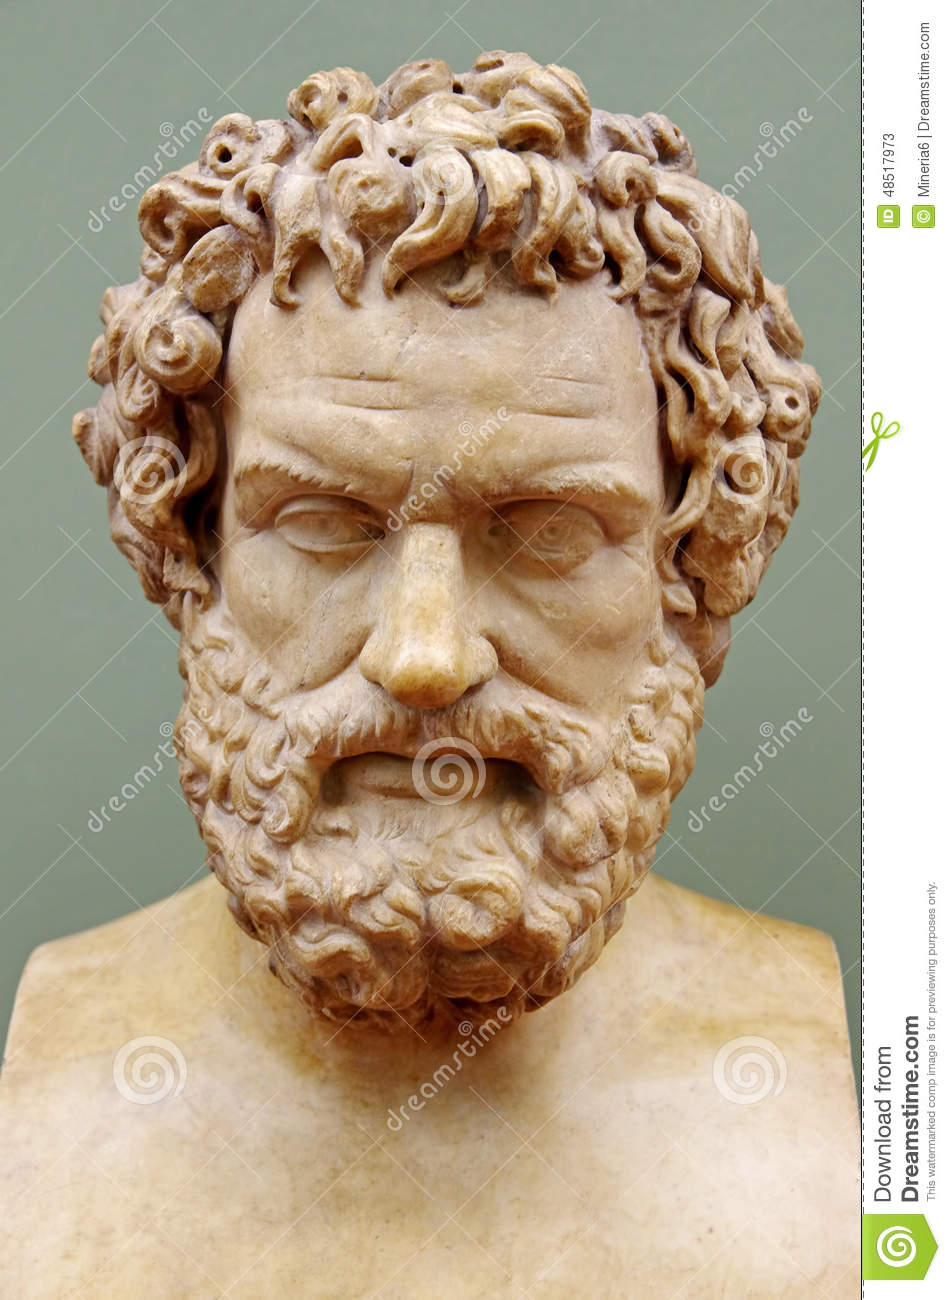 Greek Philosopher Hippocrates Stock Photo - Image: 48517973